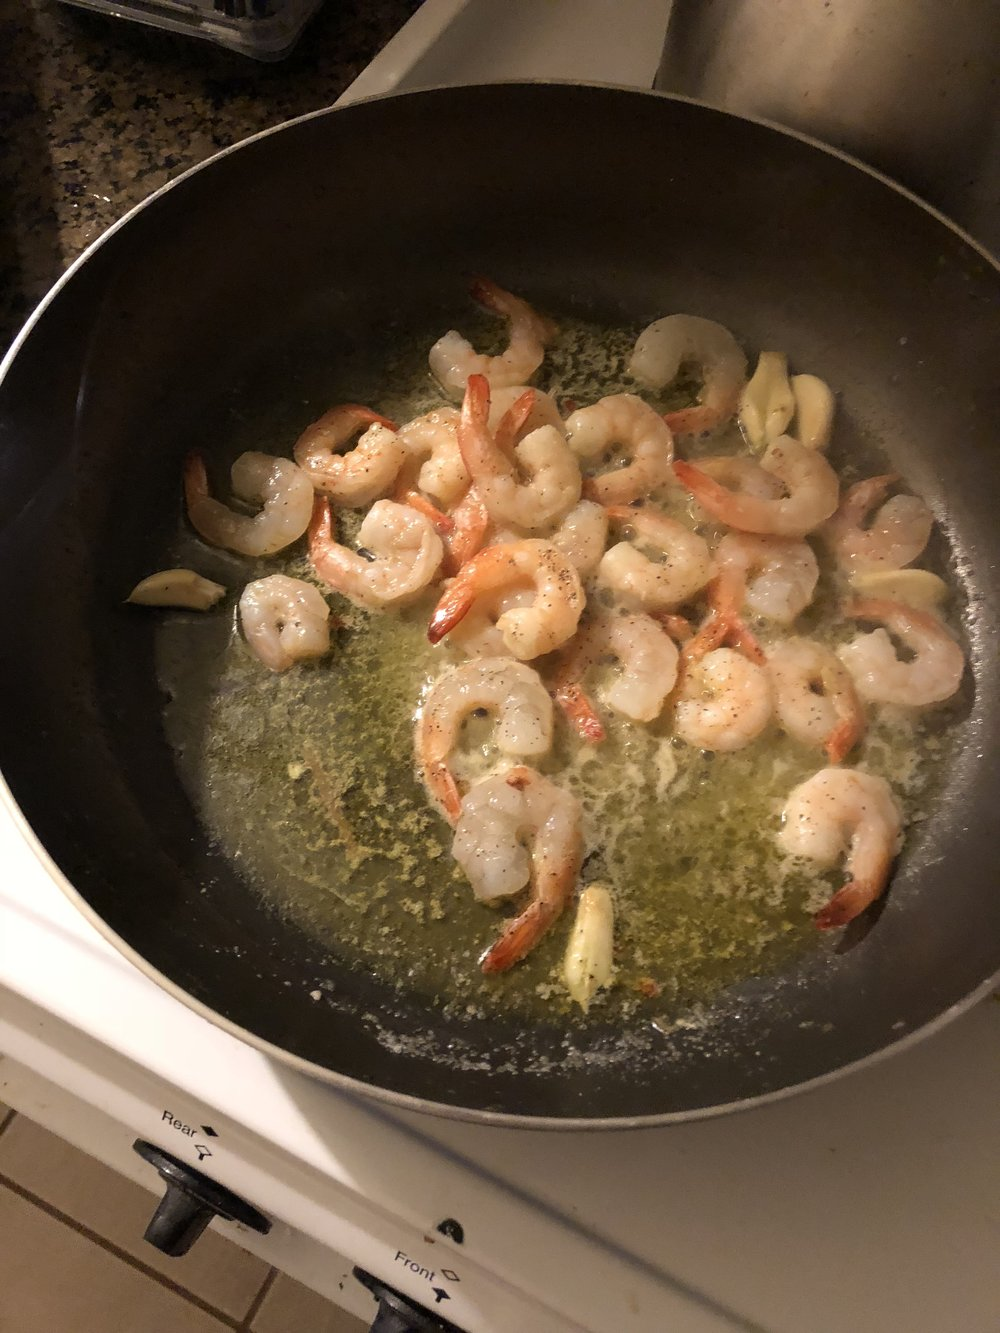 Cook until the shrimp are cooked through. While shrimp is cooking cook the pasta in hot salted boil water.